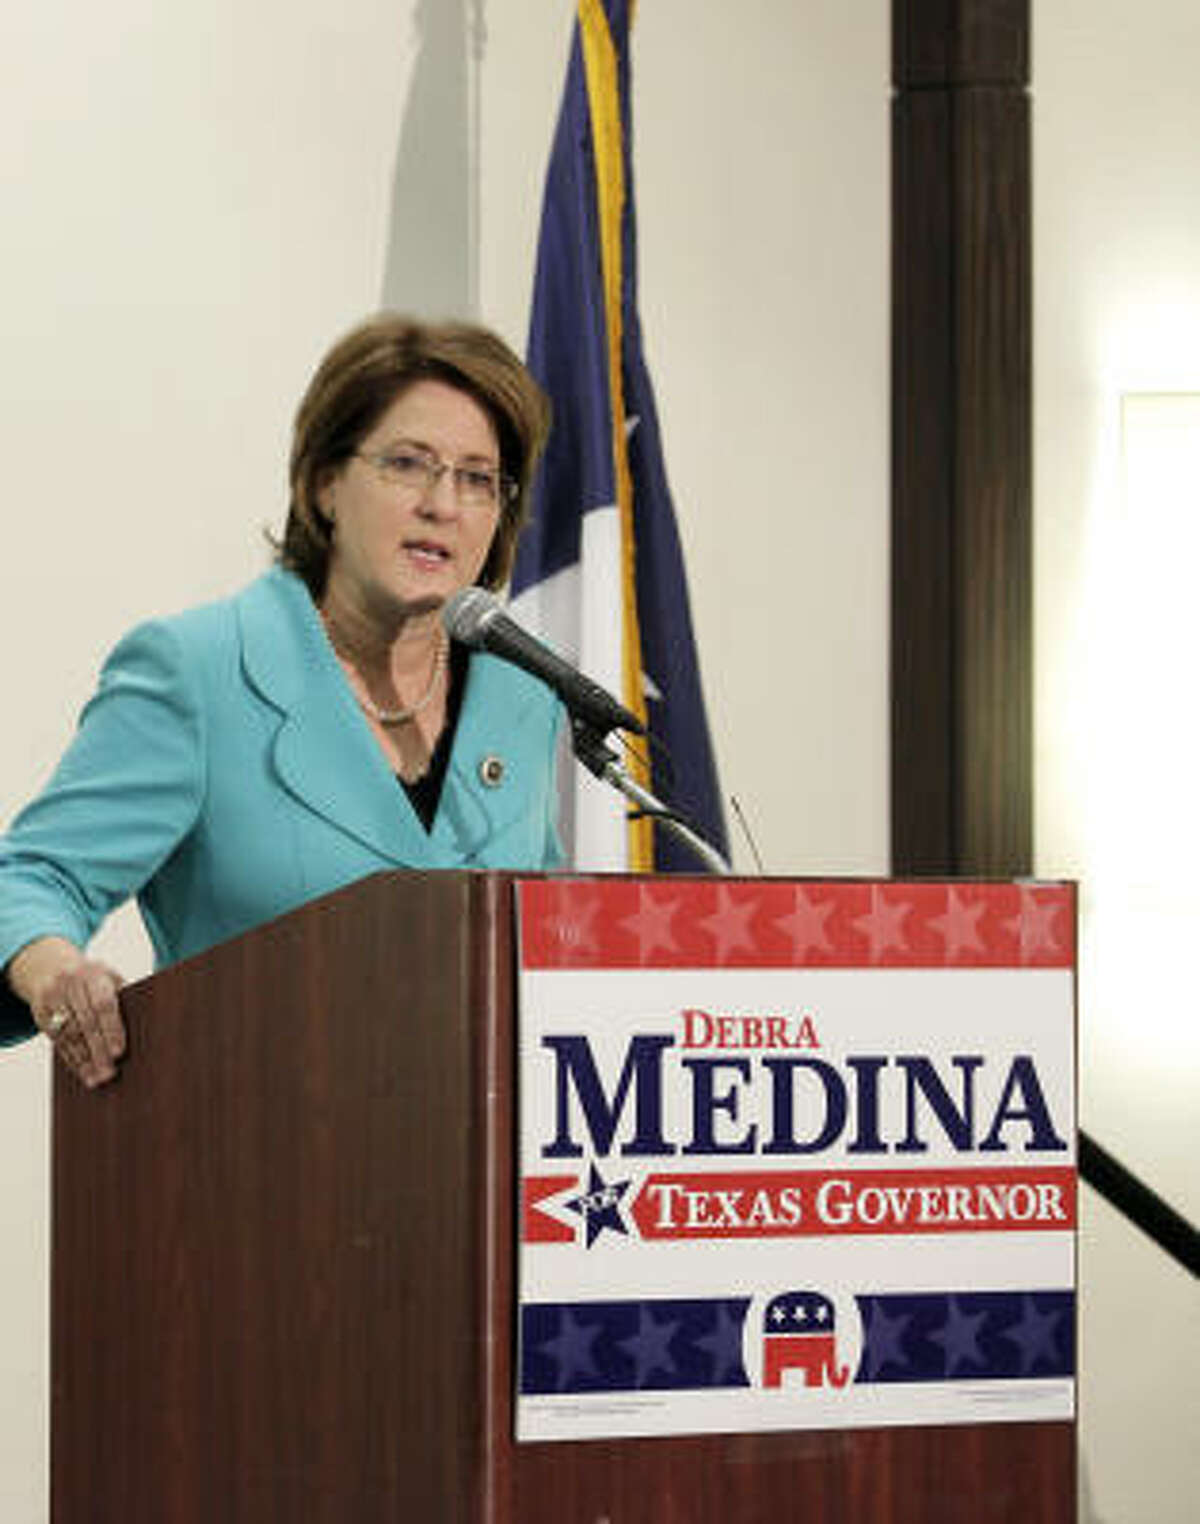 Despite the 9/11 controversy, Debra Medina still says she expects to win the Republican gubernatorial nomination.